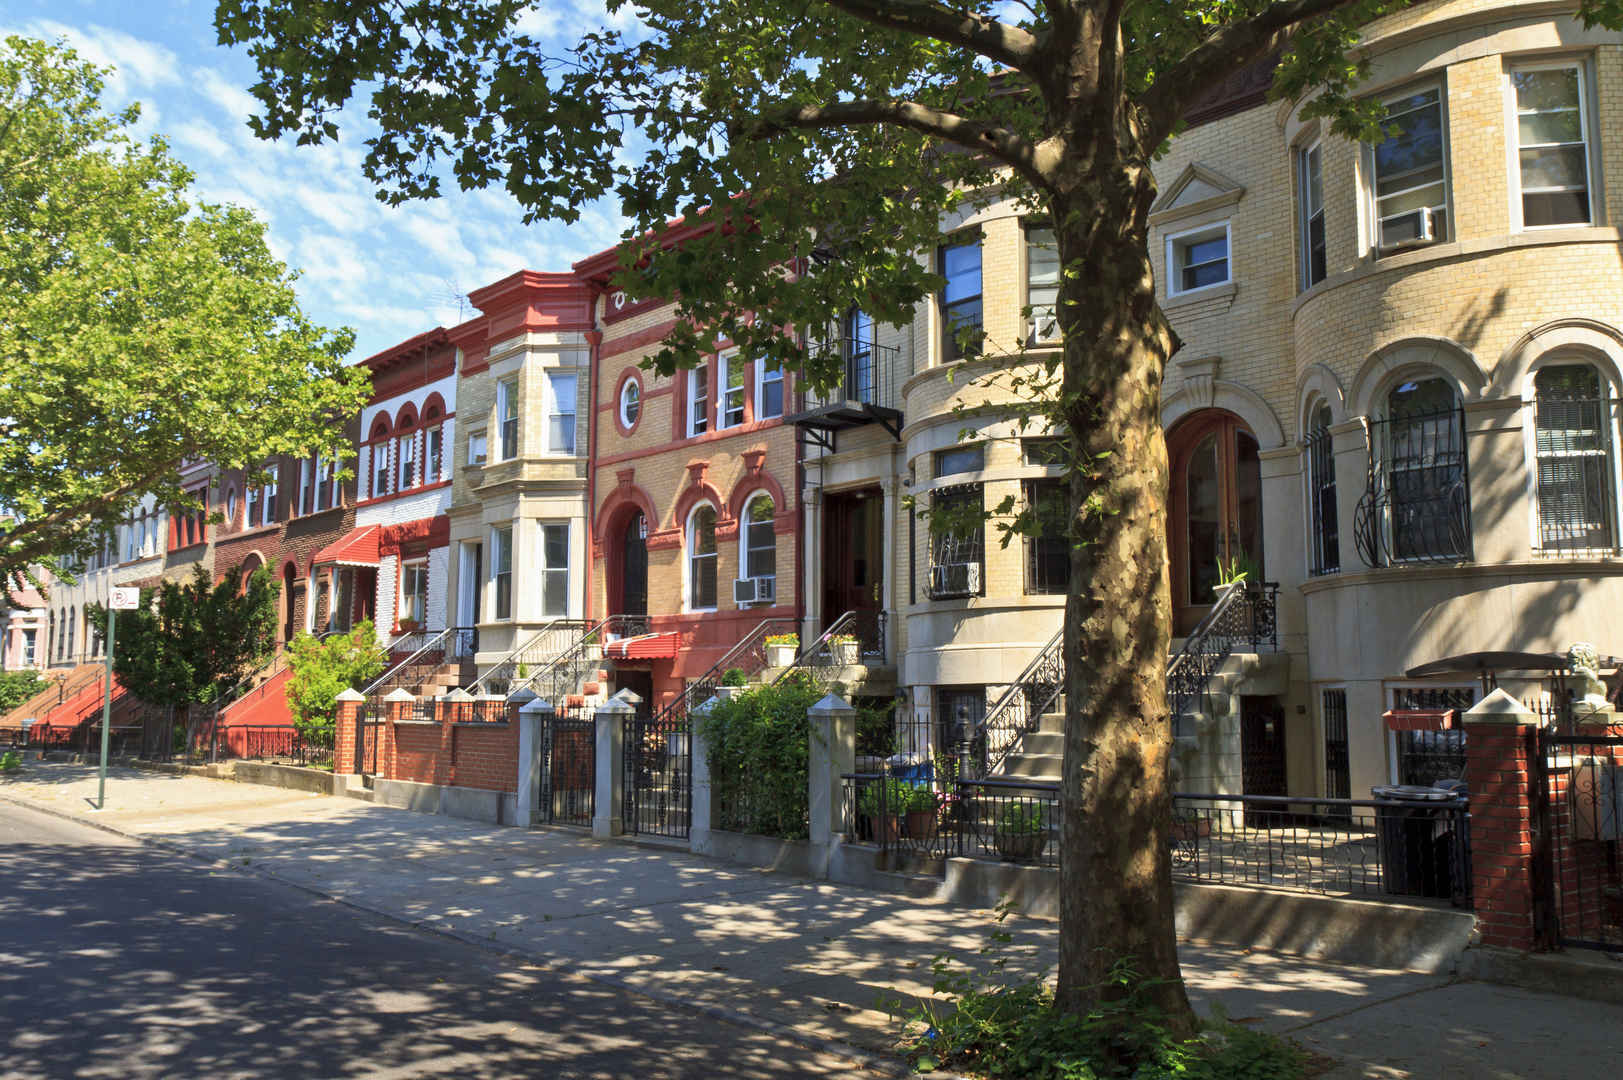 Residential brownstones on tree-lined street, Crown Heights, Brooklyn